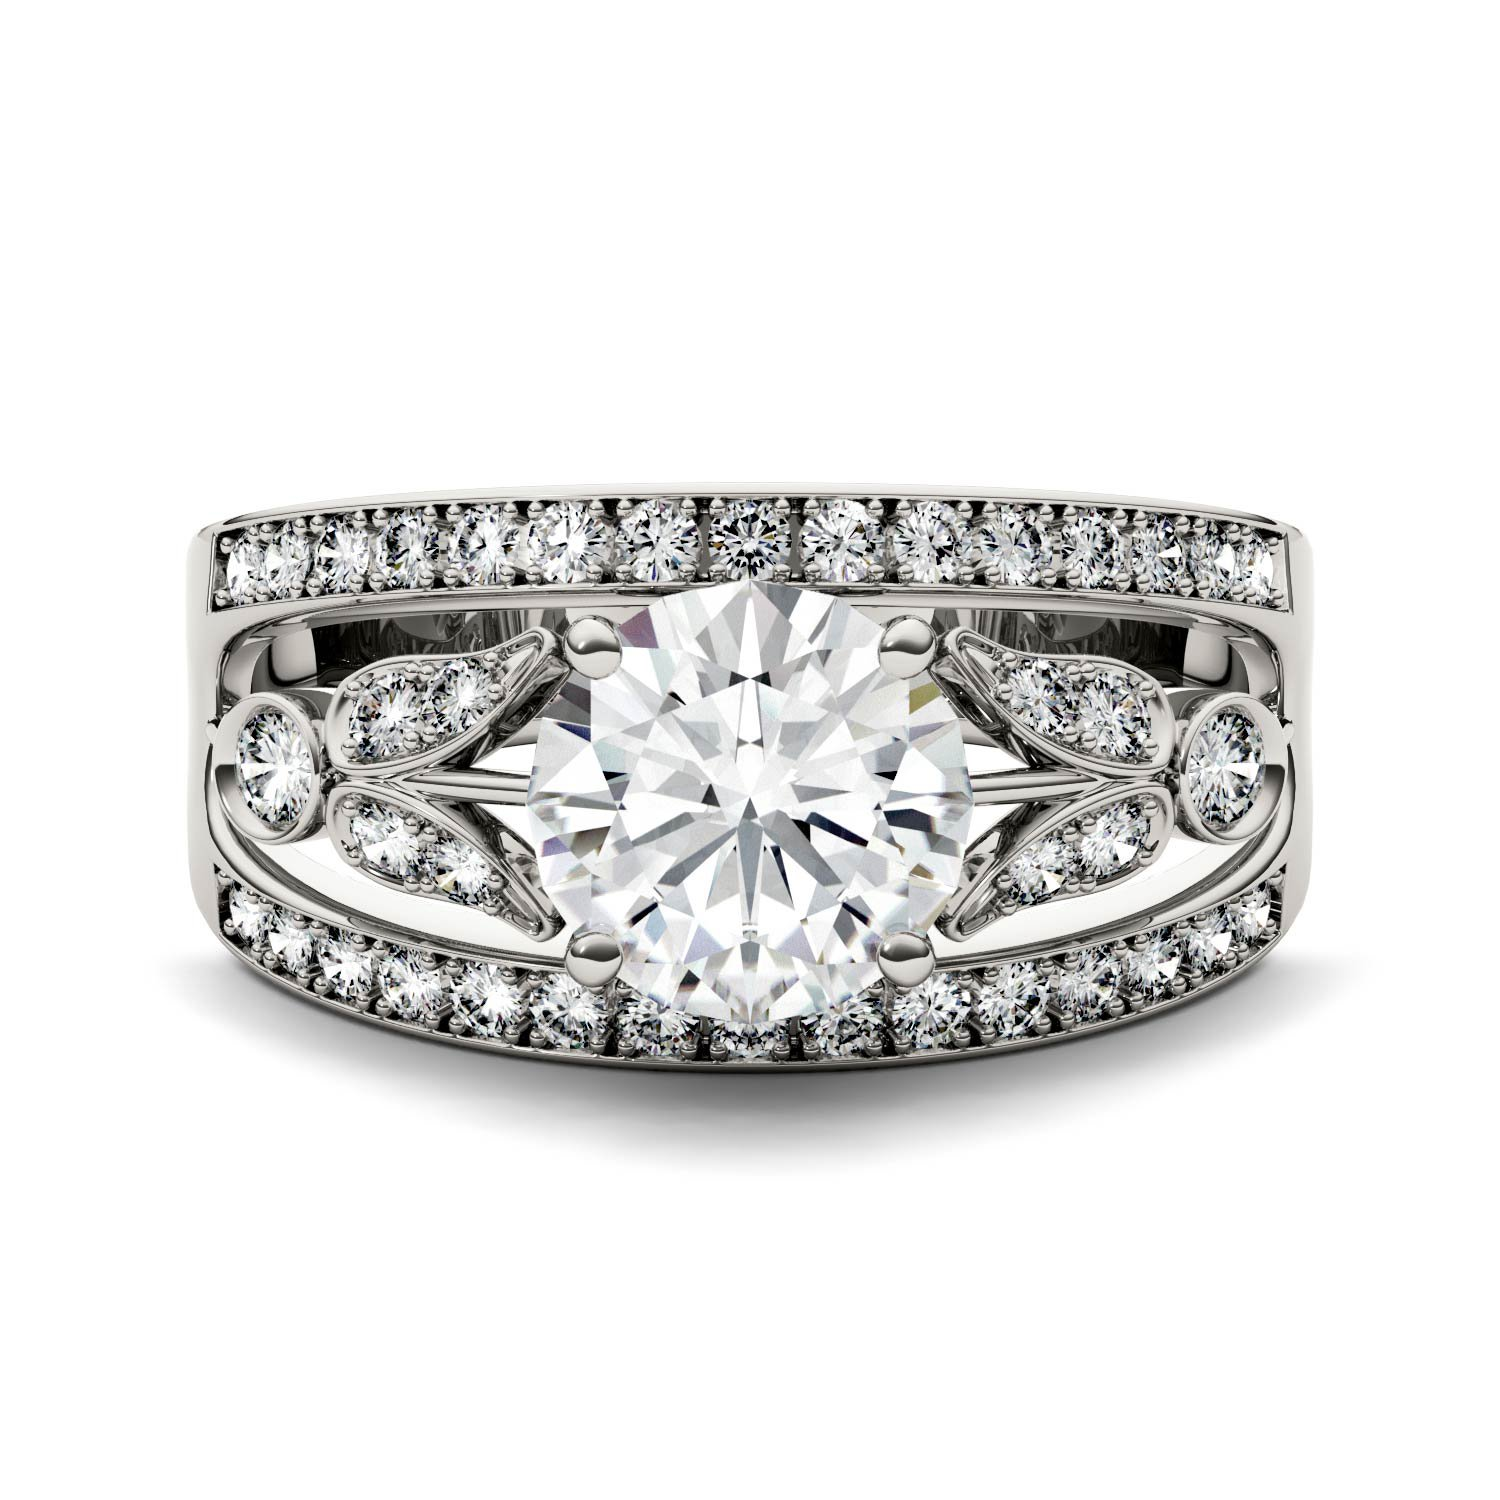 Forever Brilliant Round 7.5mm Moissanite Ring-size 7, 1.91cttw DEW By Charles & Colvard by Charles & Colvard (Image #4)